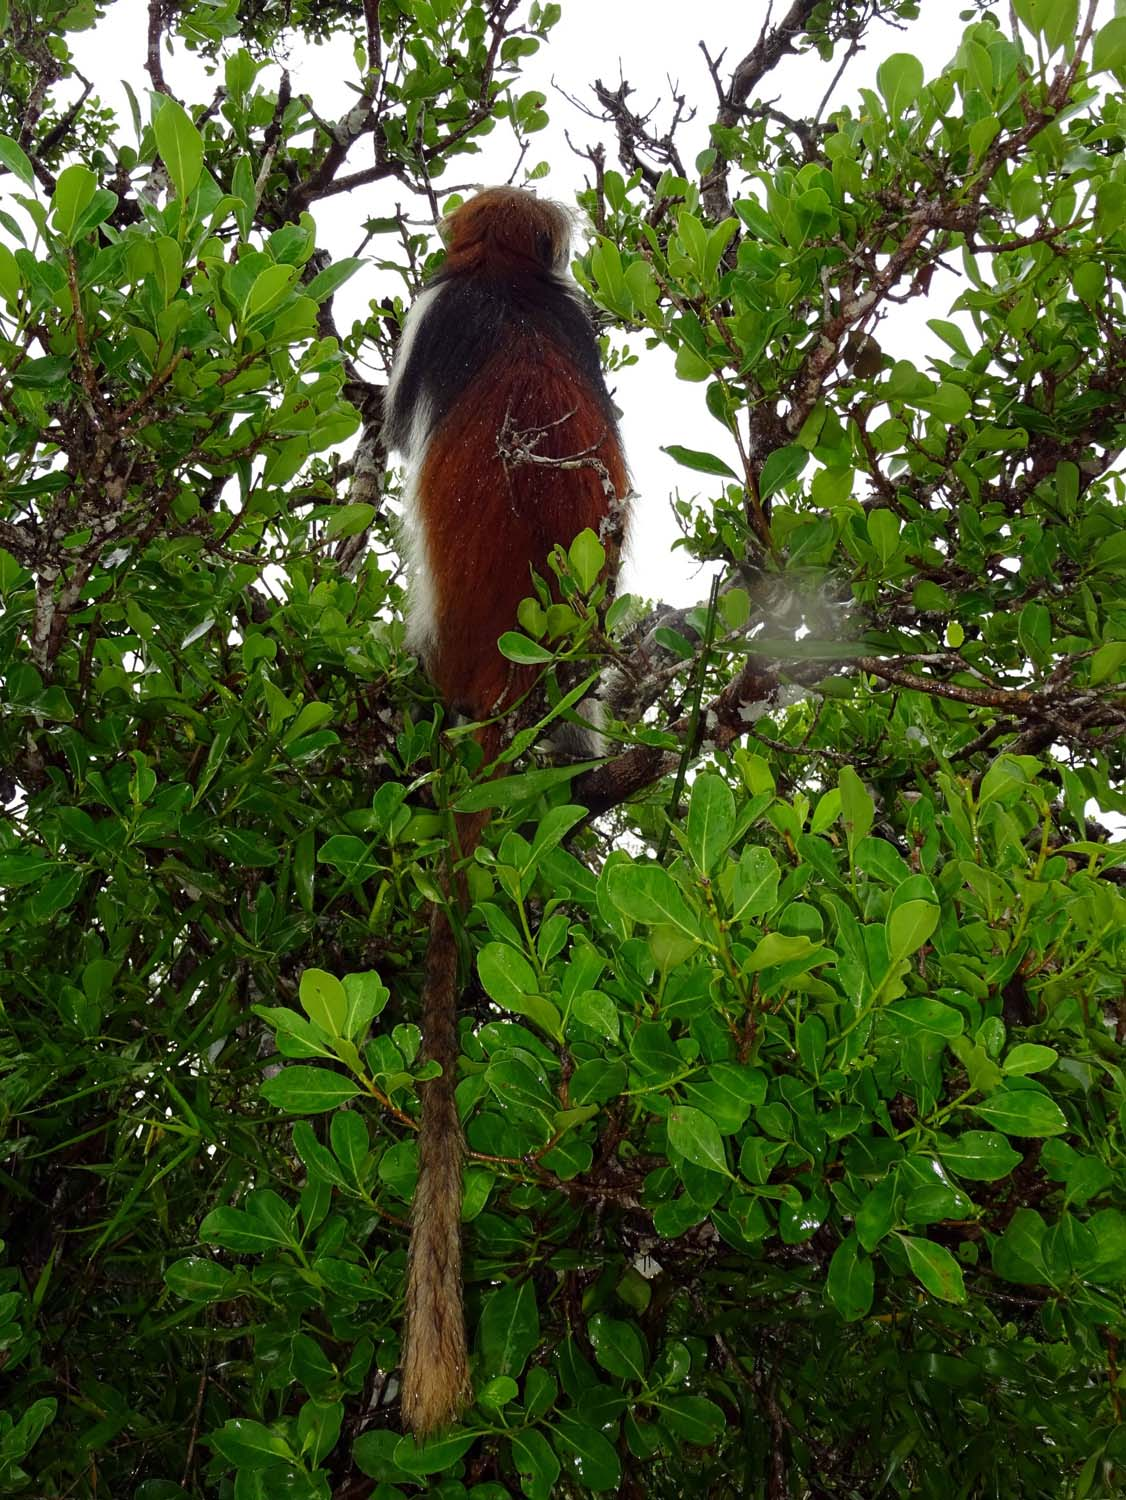 you can clearly see the red back ad tail of the red monkeys